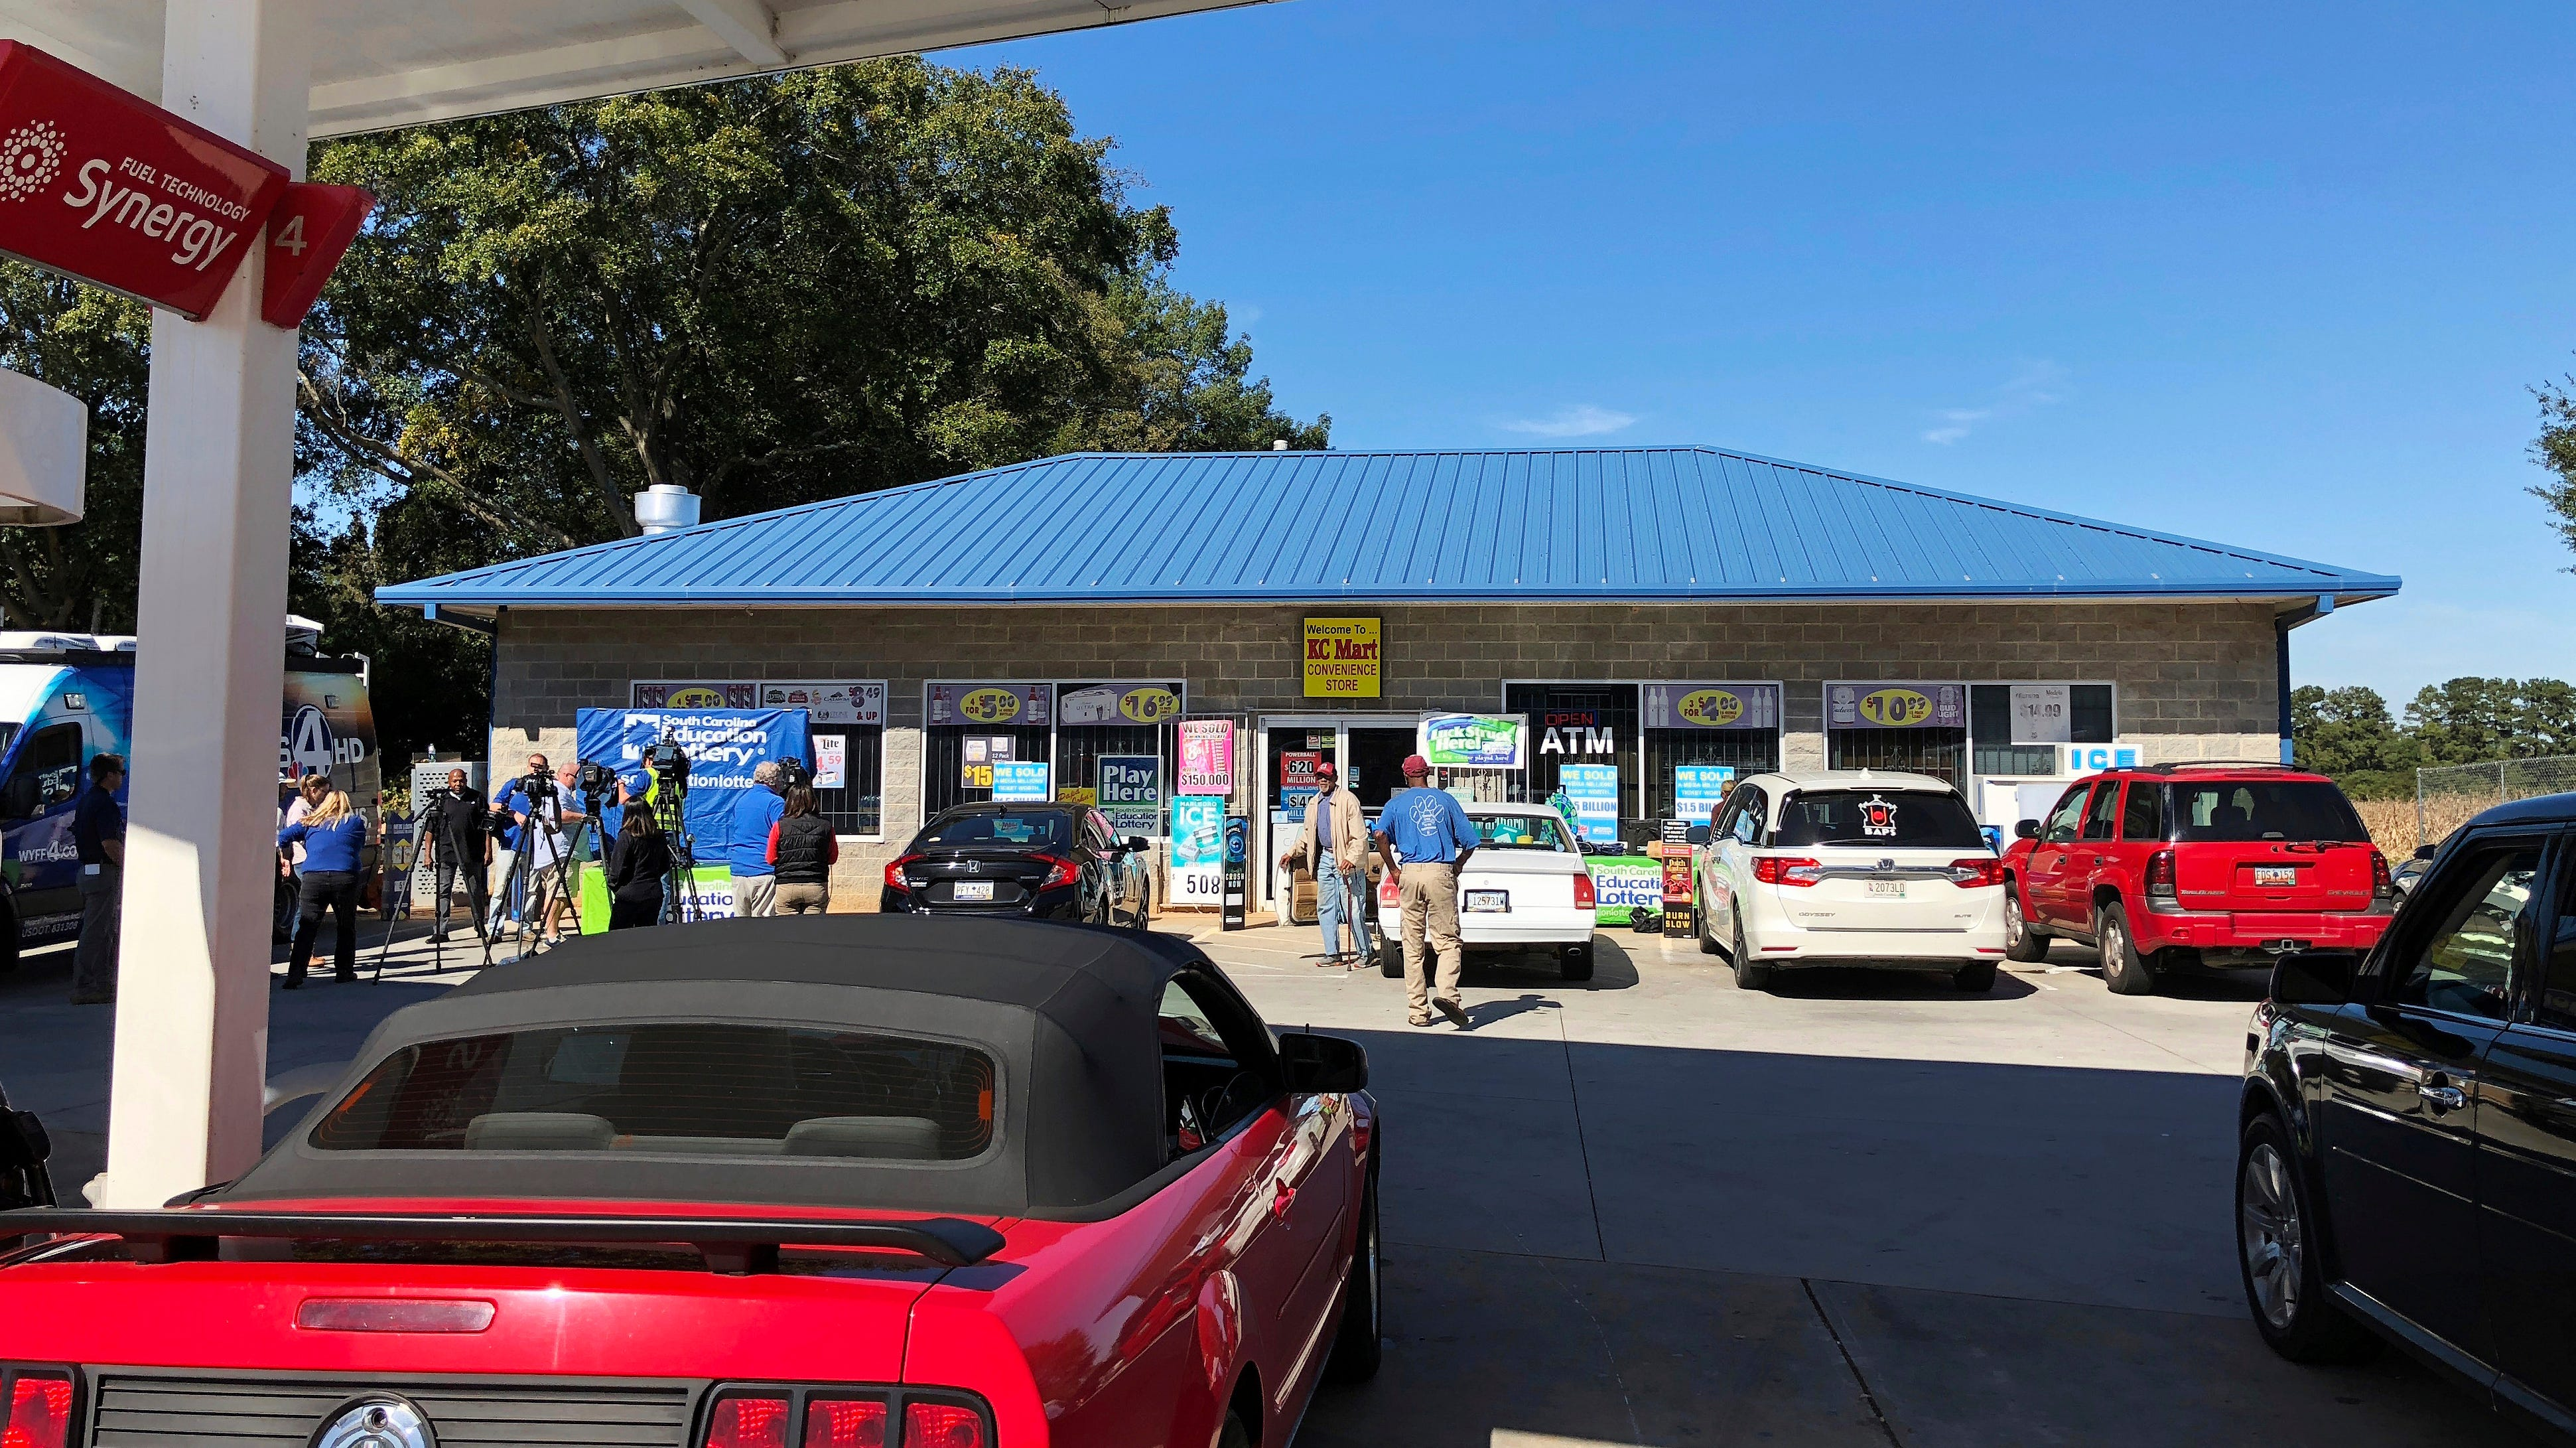 Media at left, record people entering the KC Mart in Simpsonville, S.C., on Wednesday, Oct. 24, 2018, after it was announced the winning Mega Millions lottery ticket was purchased at the store.